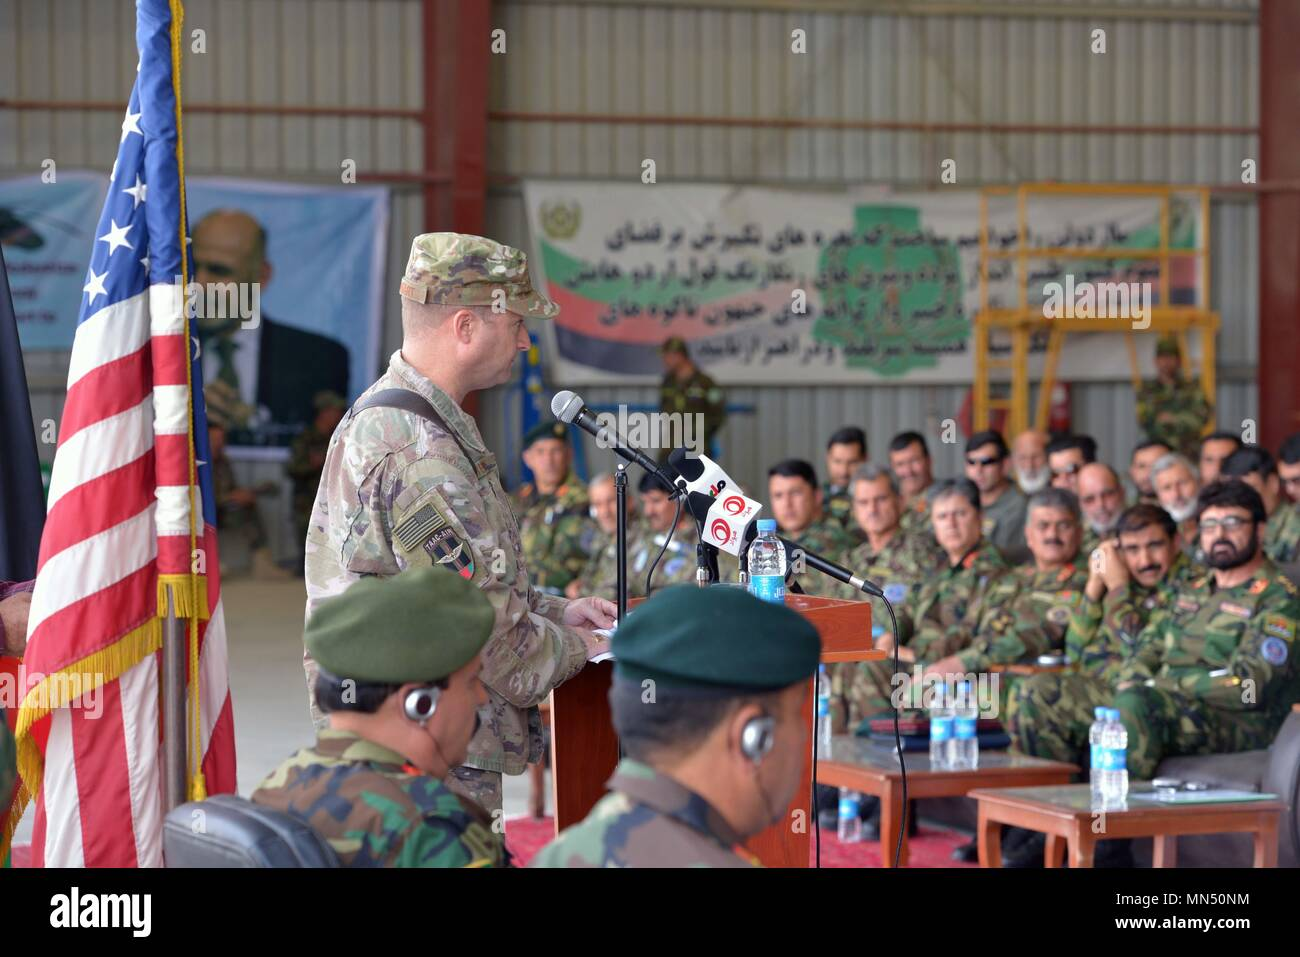 KANDAHAR AIRFIELD (May 8,2018) -- U.S. Air Force Brig. Gen. Phillip Stewart, Train, Advise, Assist Command-Air commander, addresses graduates from the first Afghan UH-60 Mission Qualification Training course at a ceremony in their honor May 8, 2018, Kandahar Air base, Afghanistan. The 31 graduates represent a generational shift from the older soviet-trained forces to a younger and more progressive western-trained and educated fleet. (U.S. Air Force photo/1st Lt. Erin Recanzone) - Stock Image